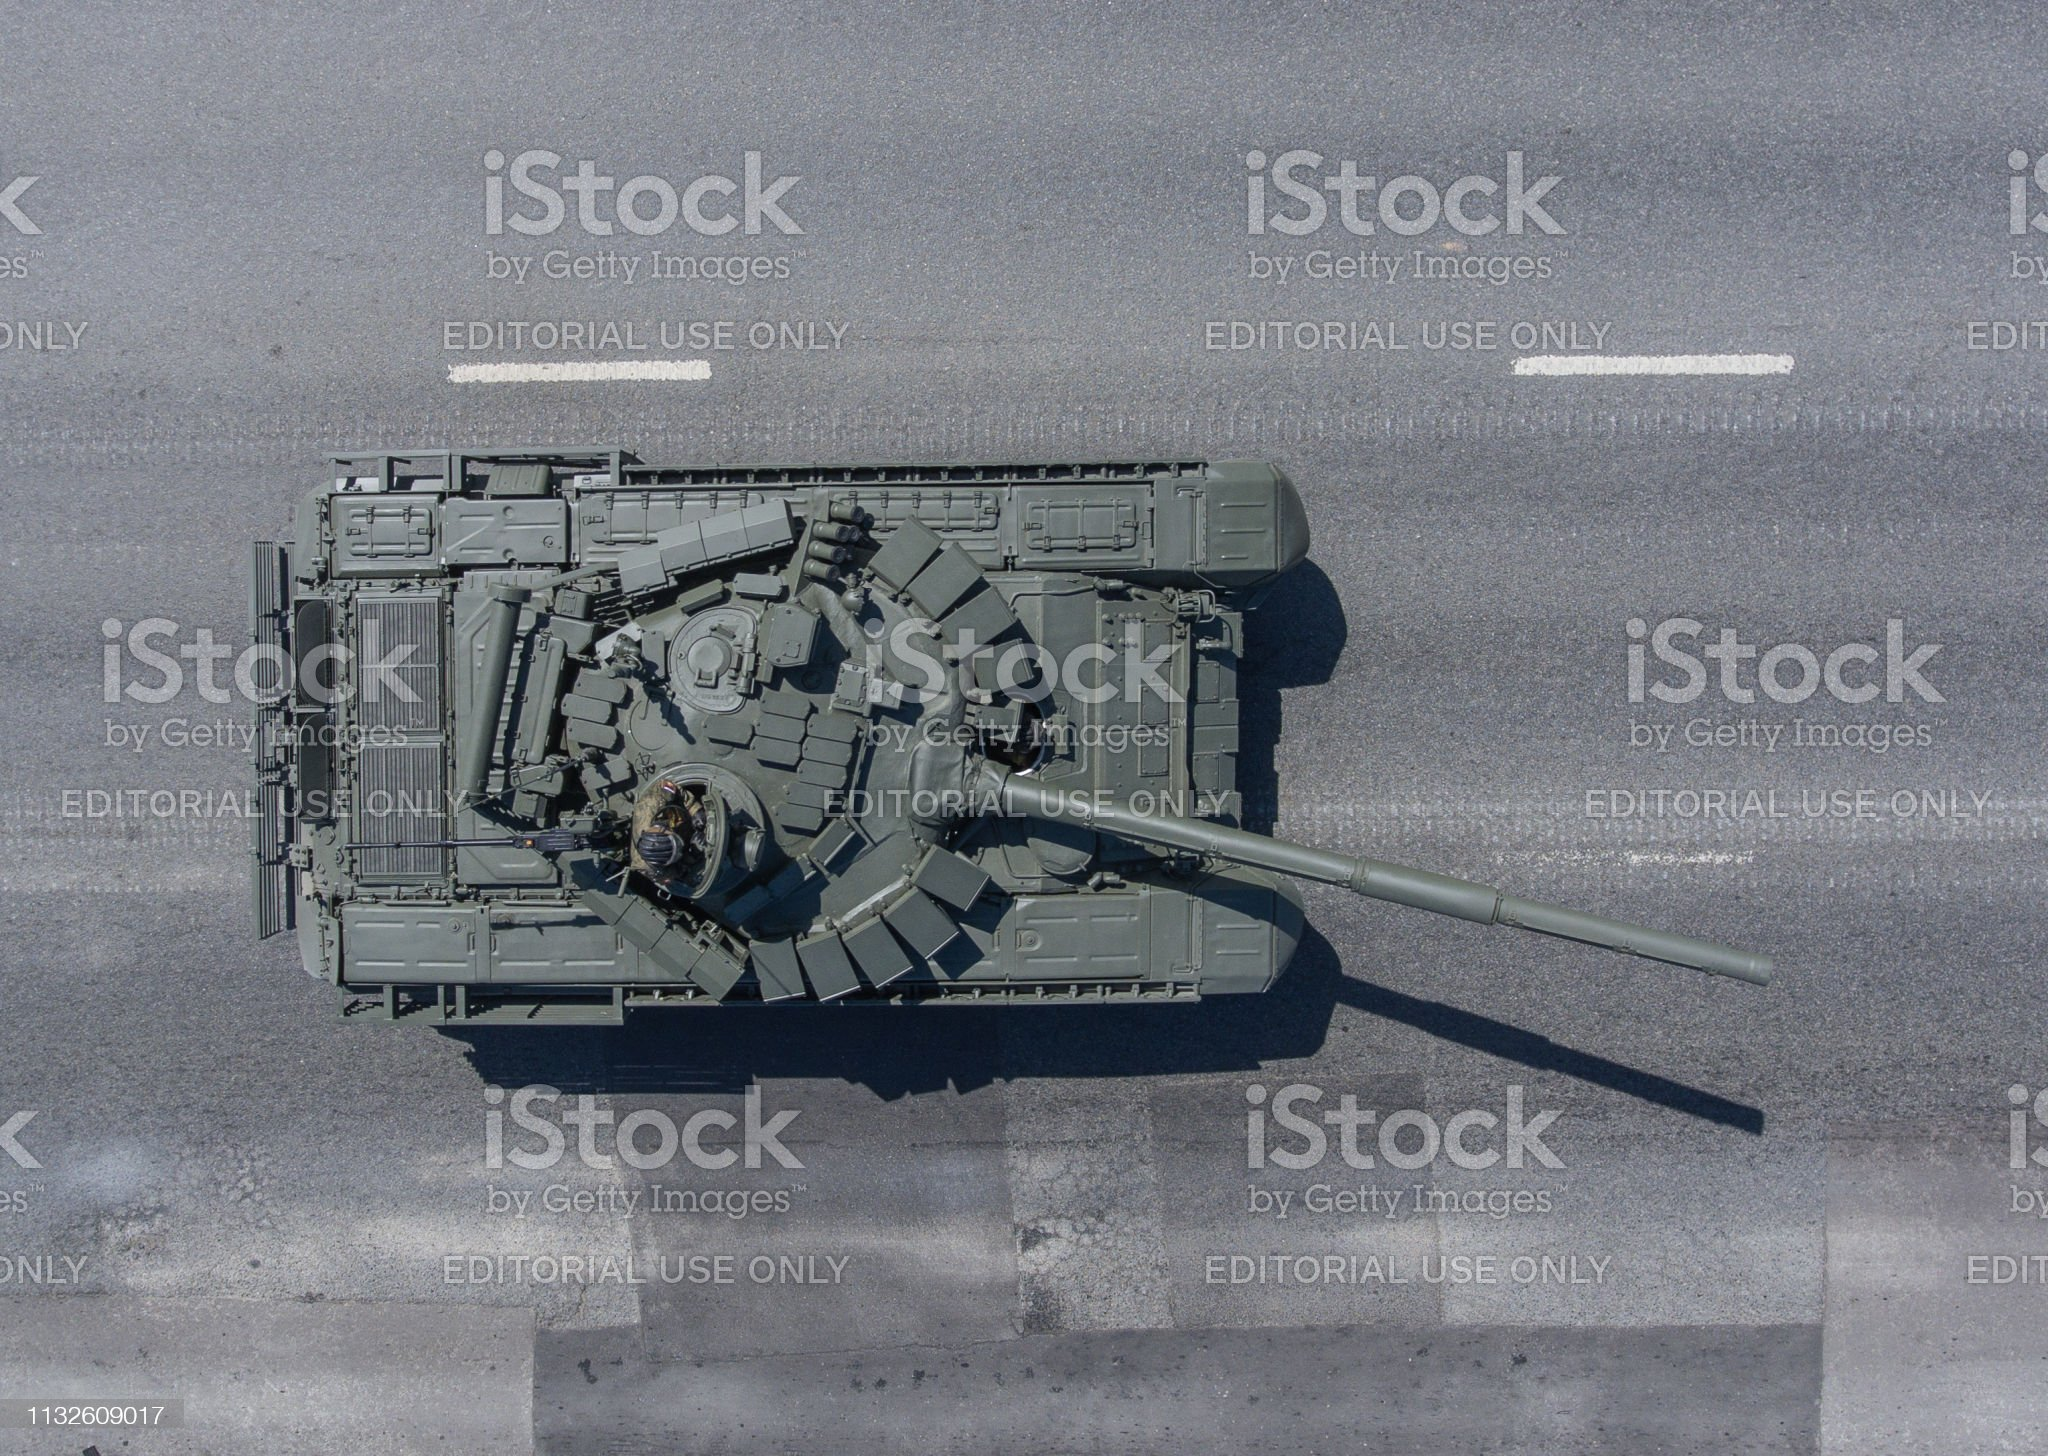 https://media.istockphoto.com/photos/upgraded-tank-t72b3-during-73th-victory-day-anniversary-top-view-picture-id1132609017?s=2048x2048